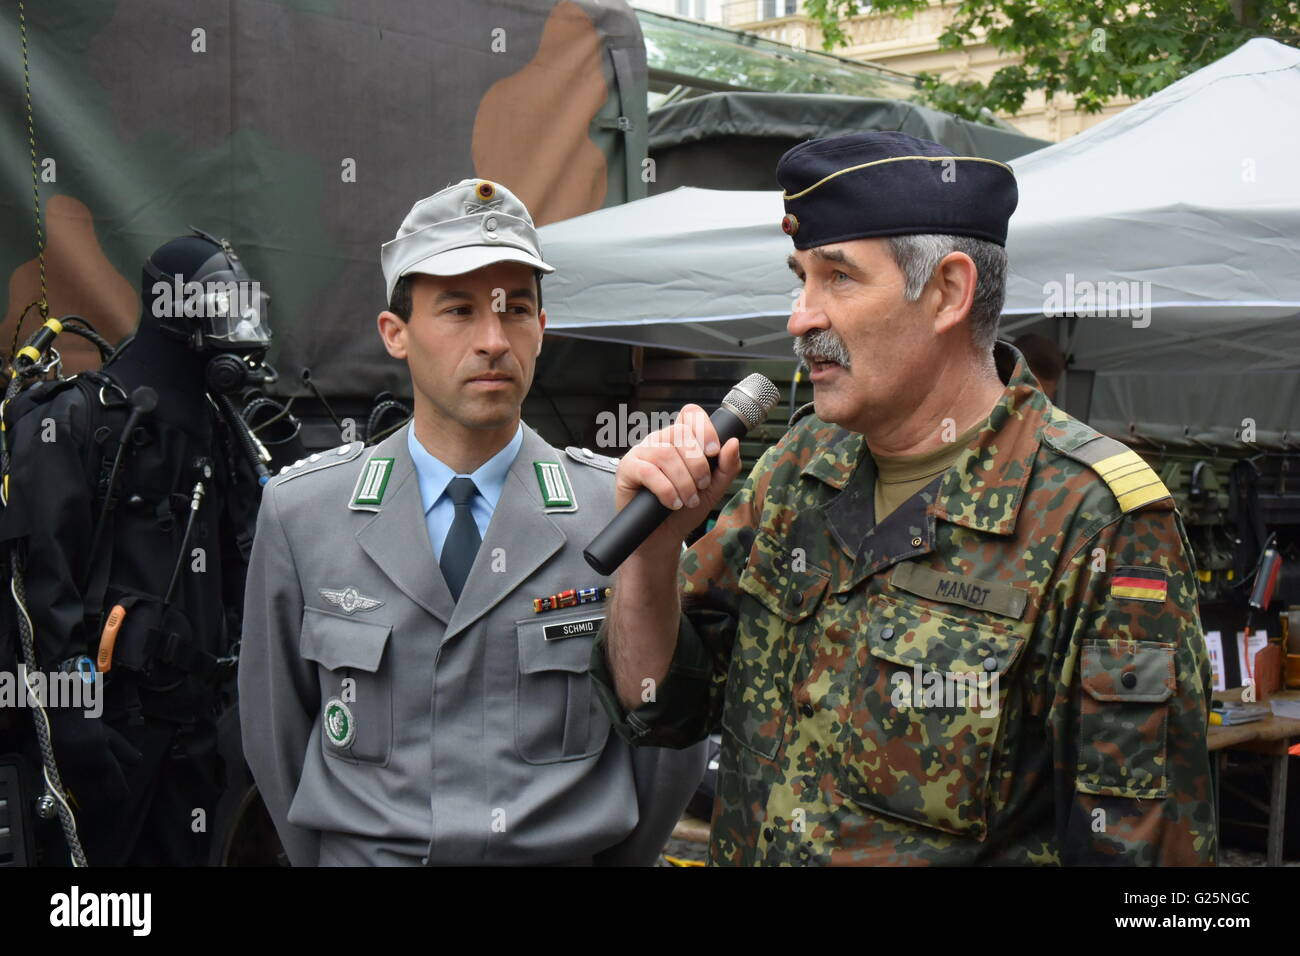 tow soldiers of the German Bundeswehr are talking about there work as a diver in the German Army - Stock Image